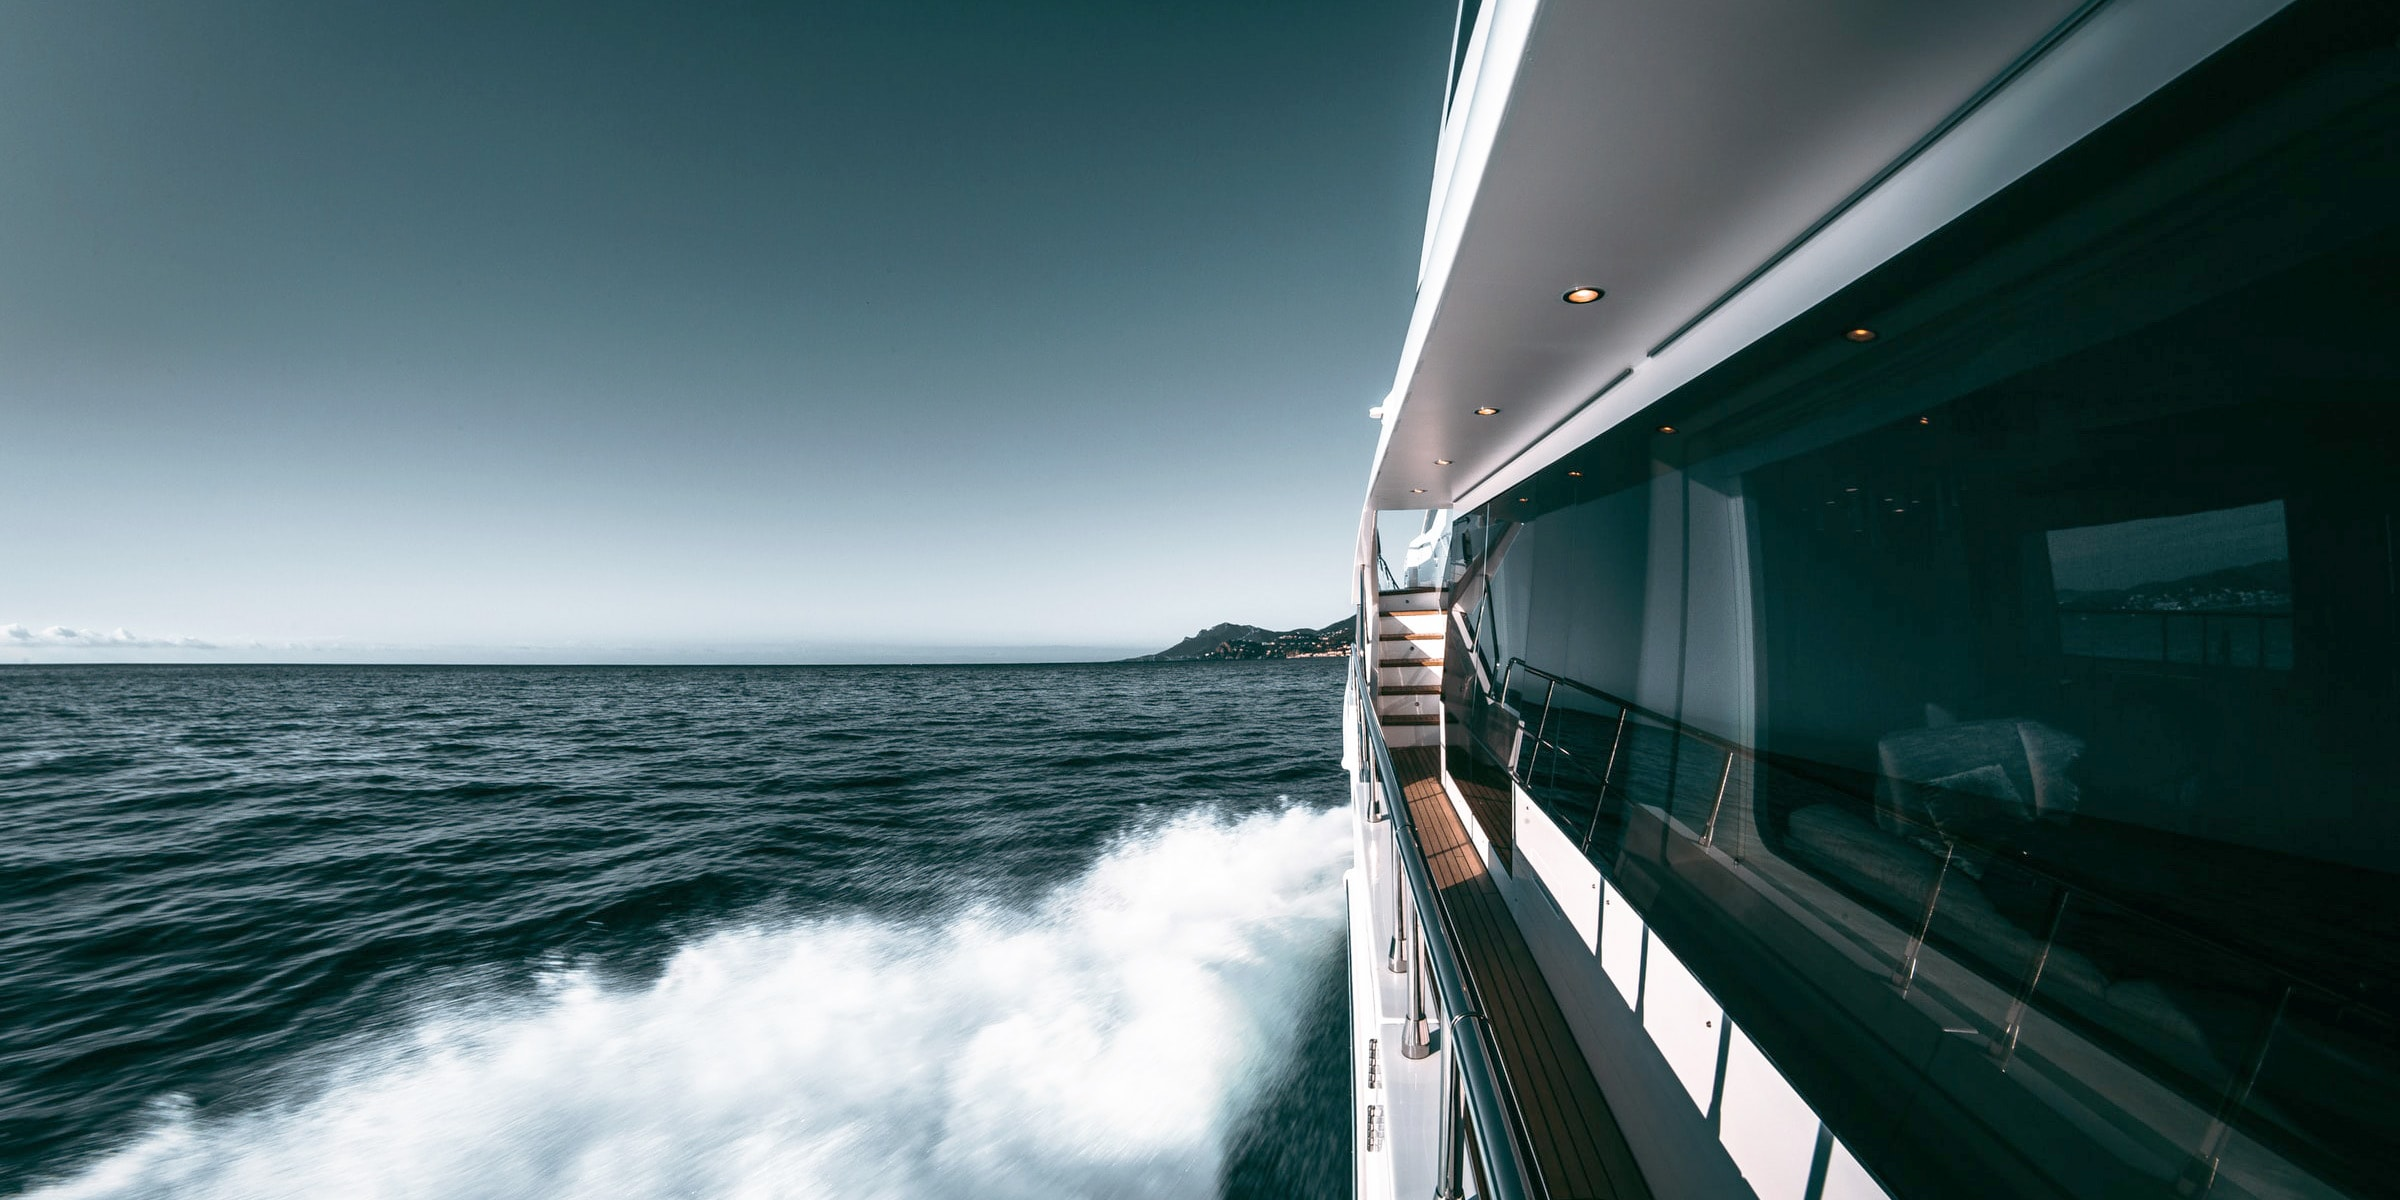 largest super yachts world ranking list - Luxe Digital